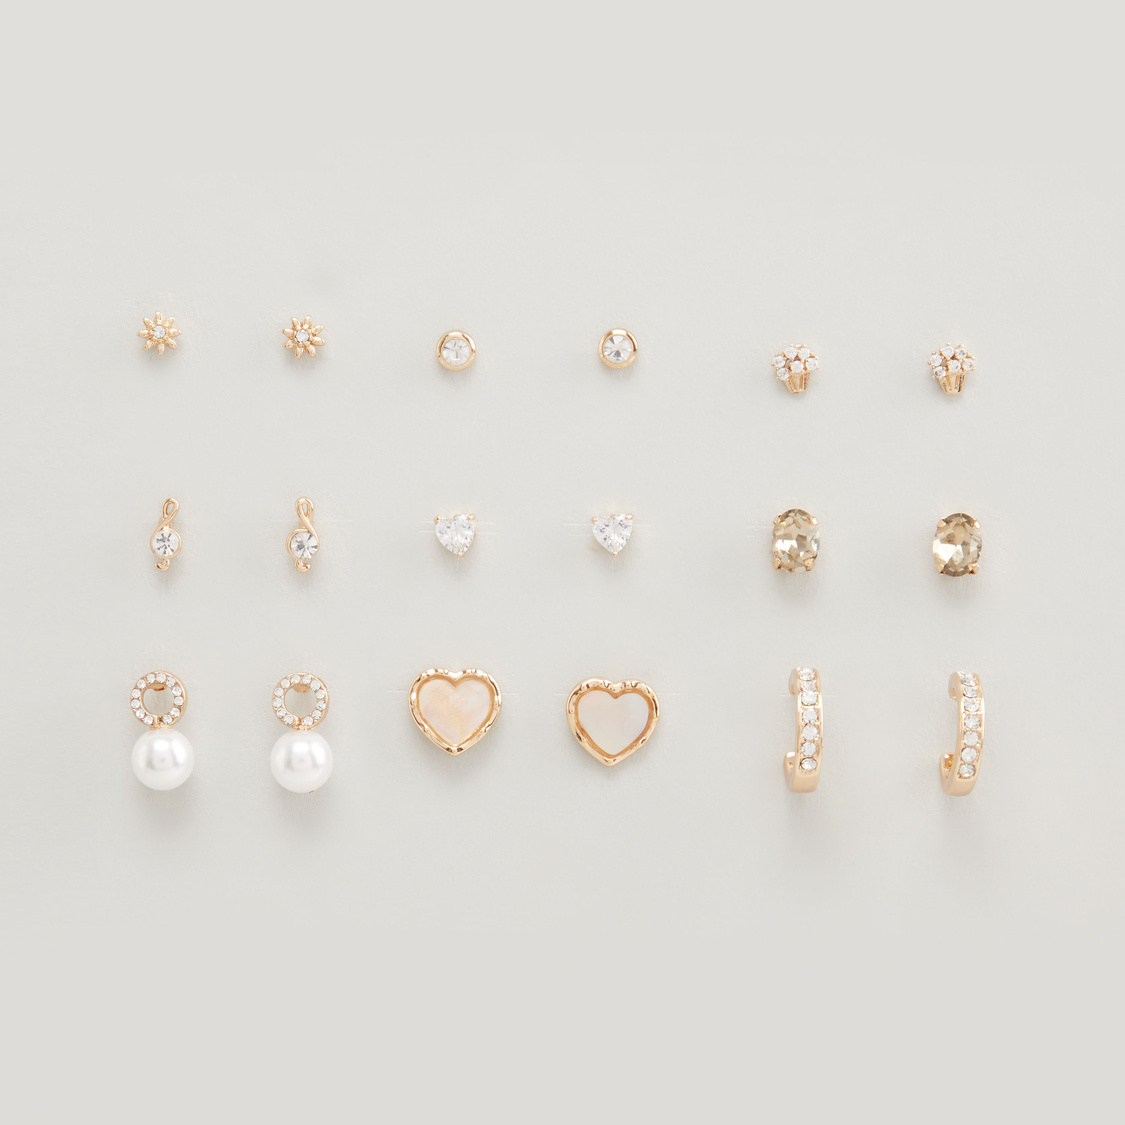 Set of 9 - Embellished Earrings with Pushback Closure